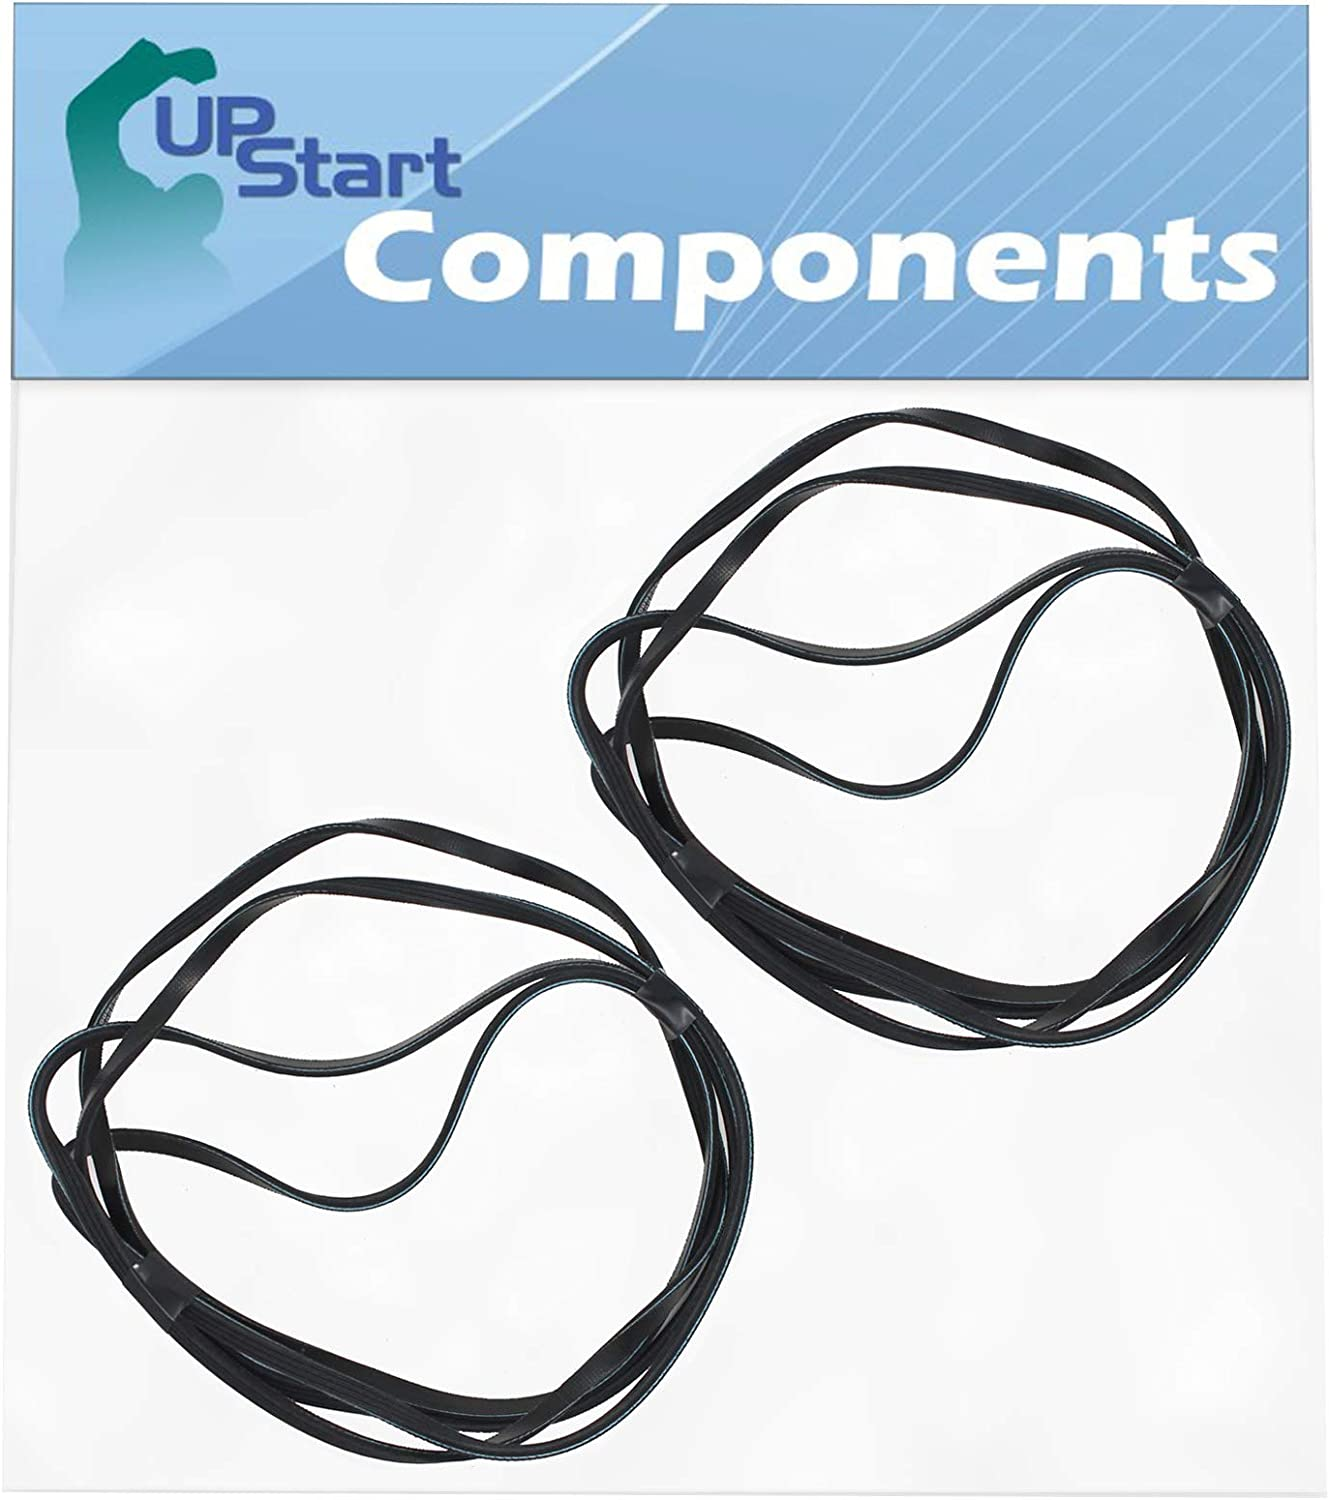 2-Pack 661570V Dryer Belt Replacement for Whirlpool WED9470WW1 - Compatible with 3387610 Drum Belt